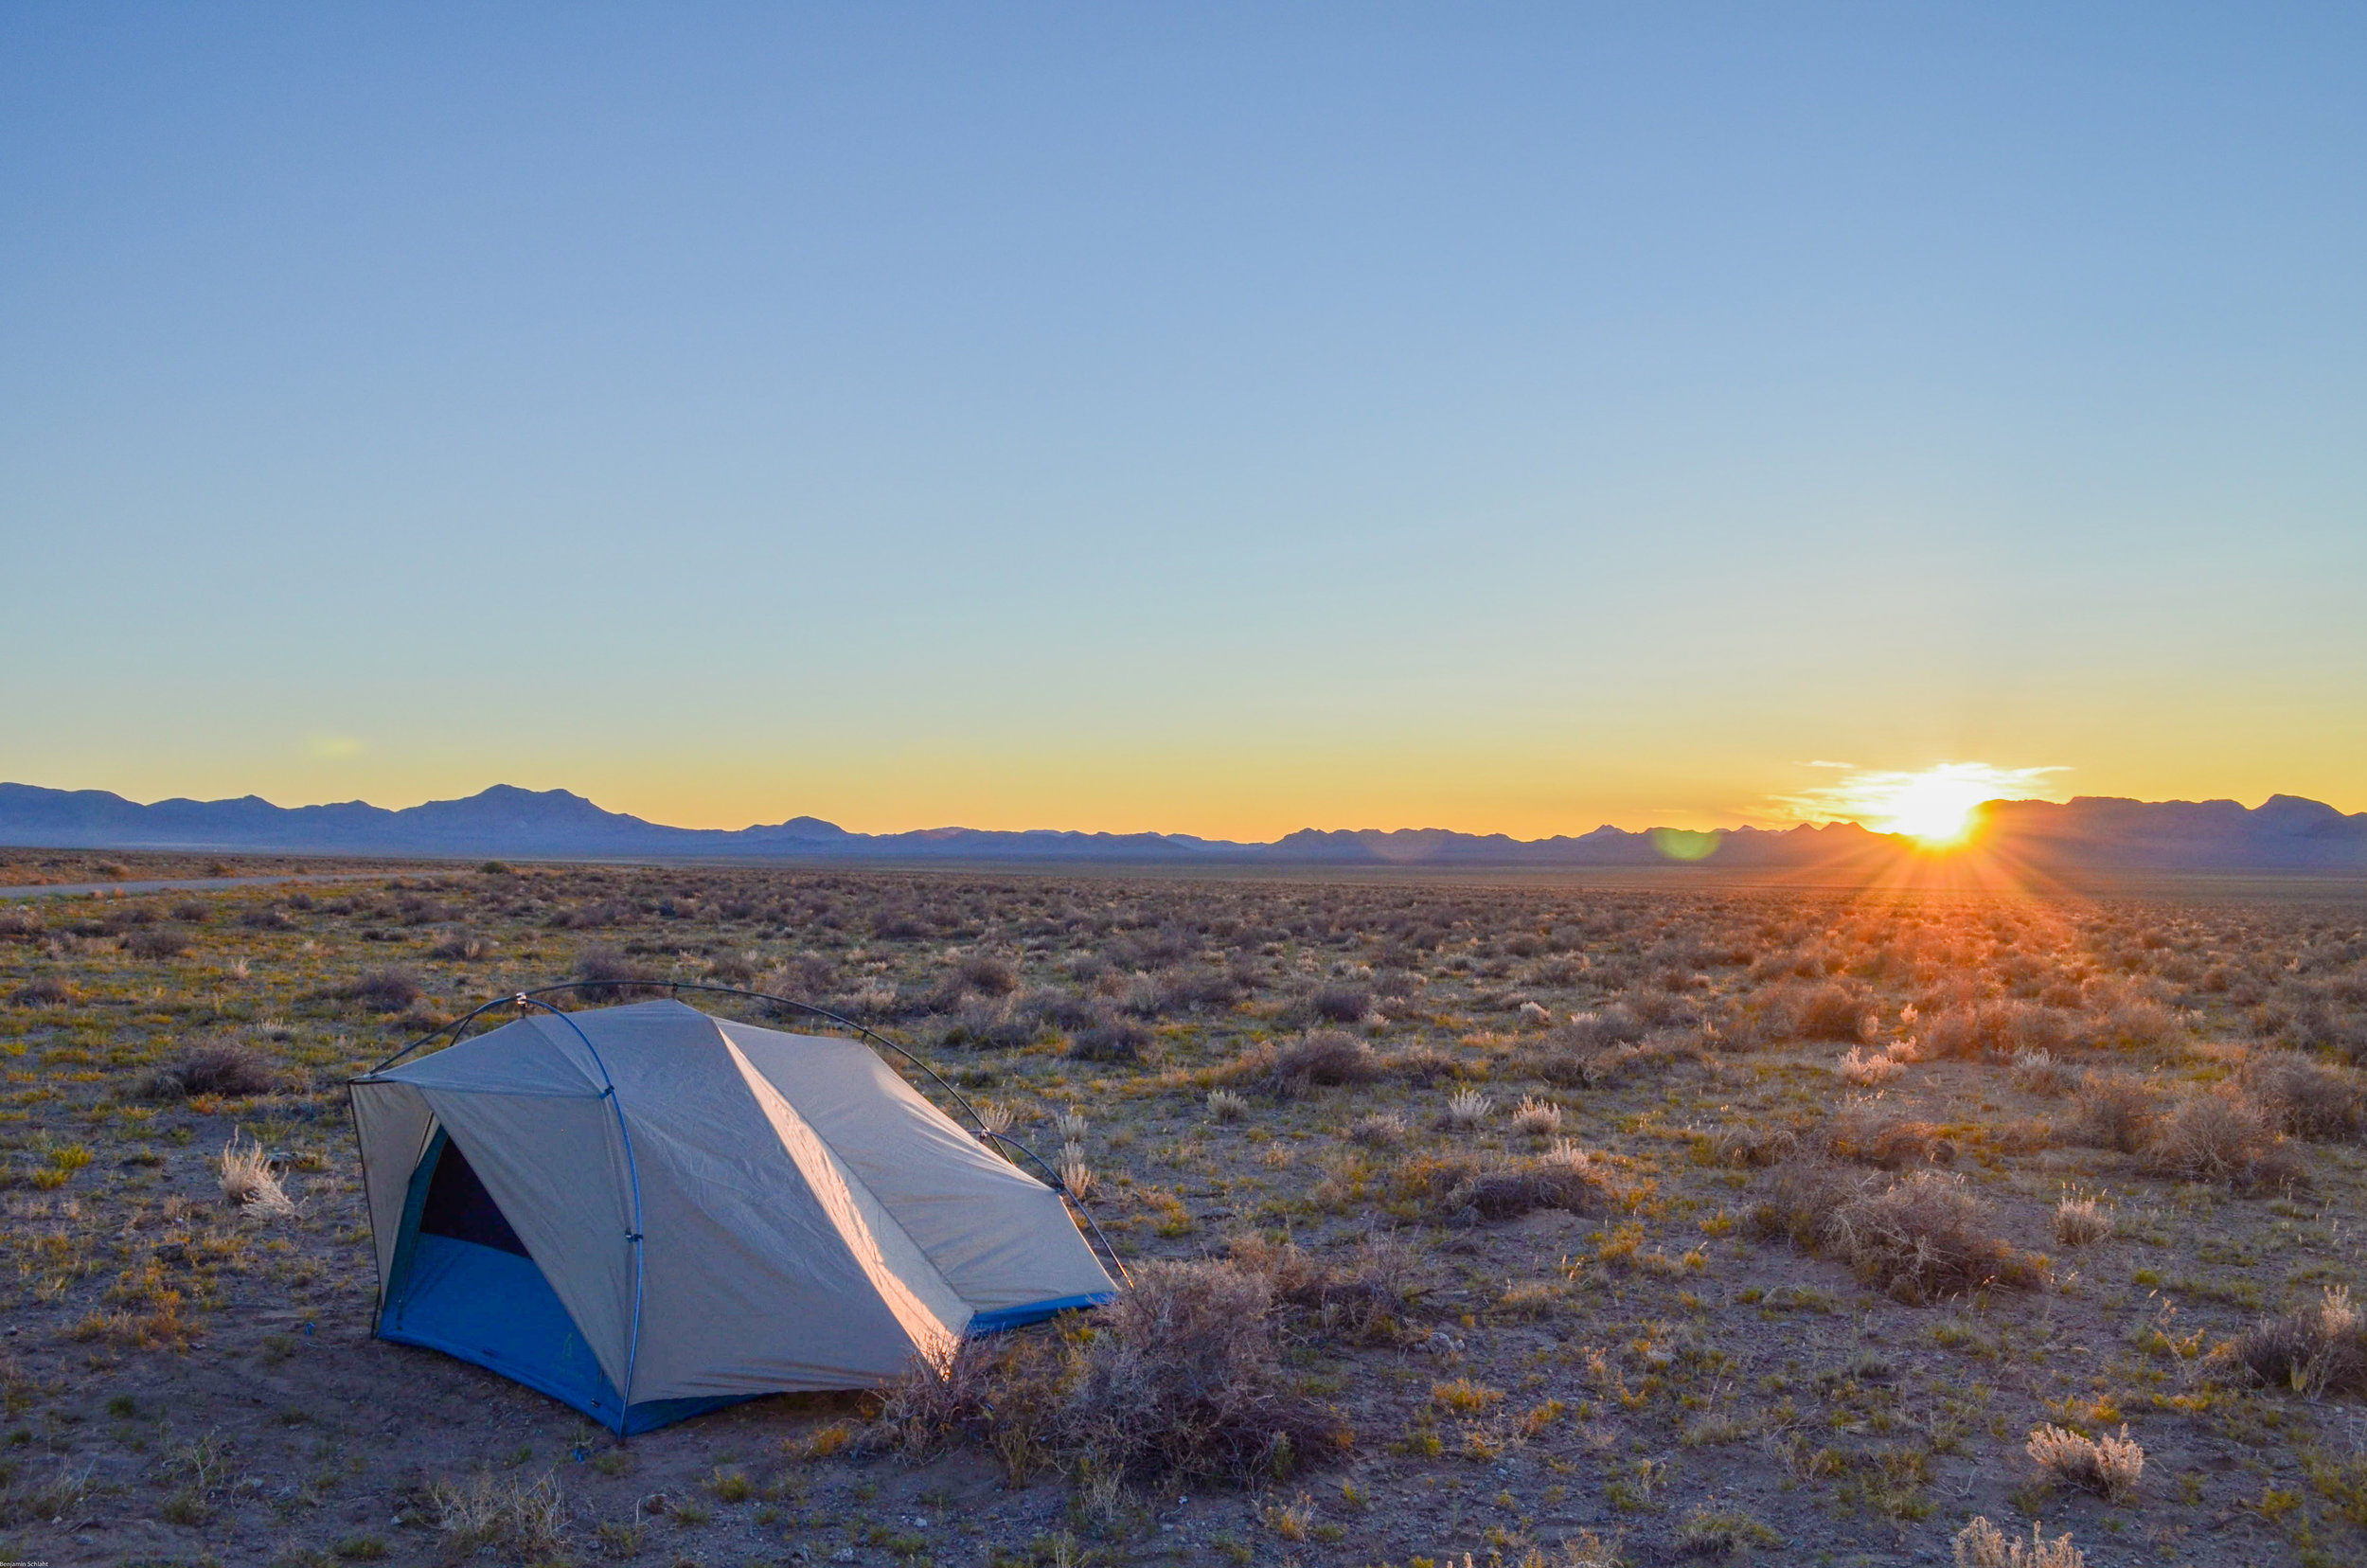 Our incredible REI tent and the mind-blowing sunset we saw